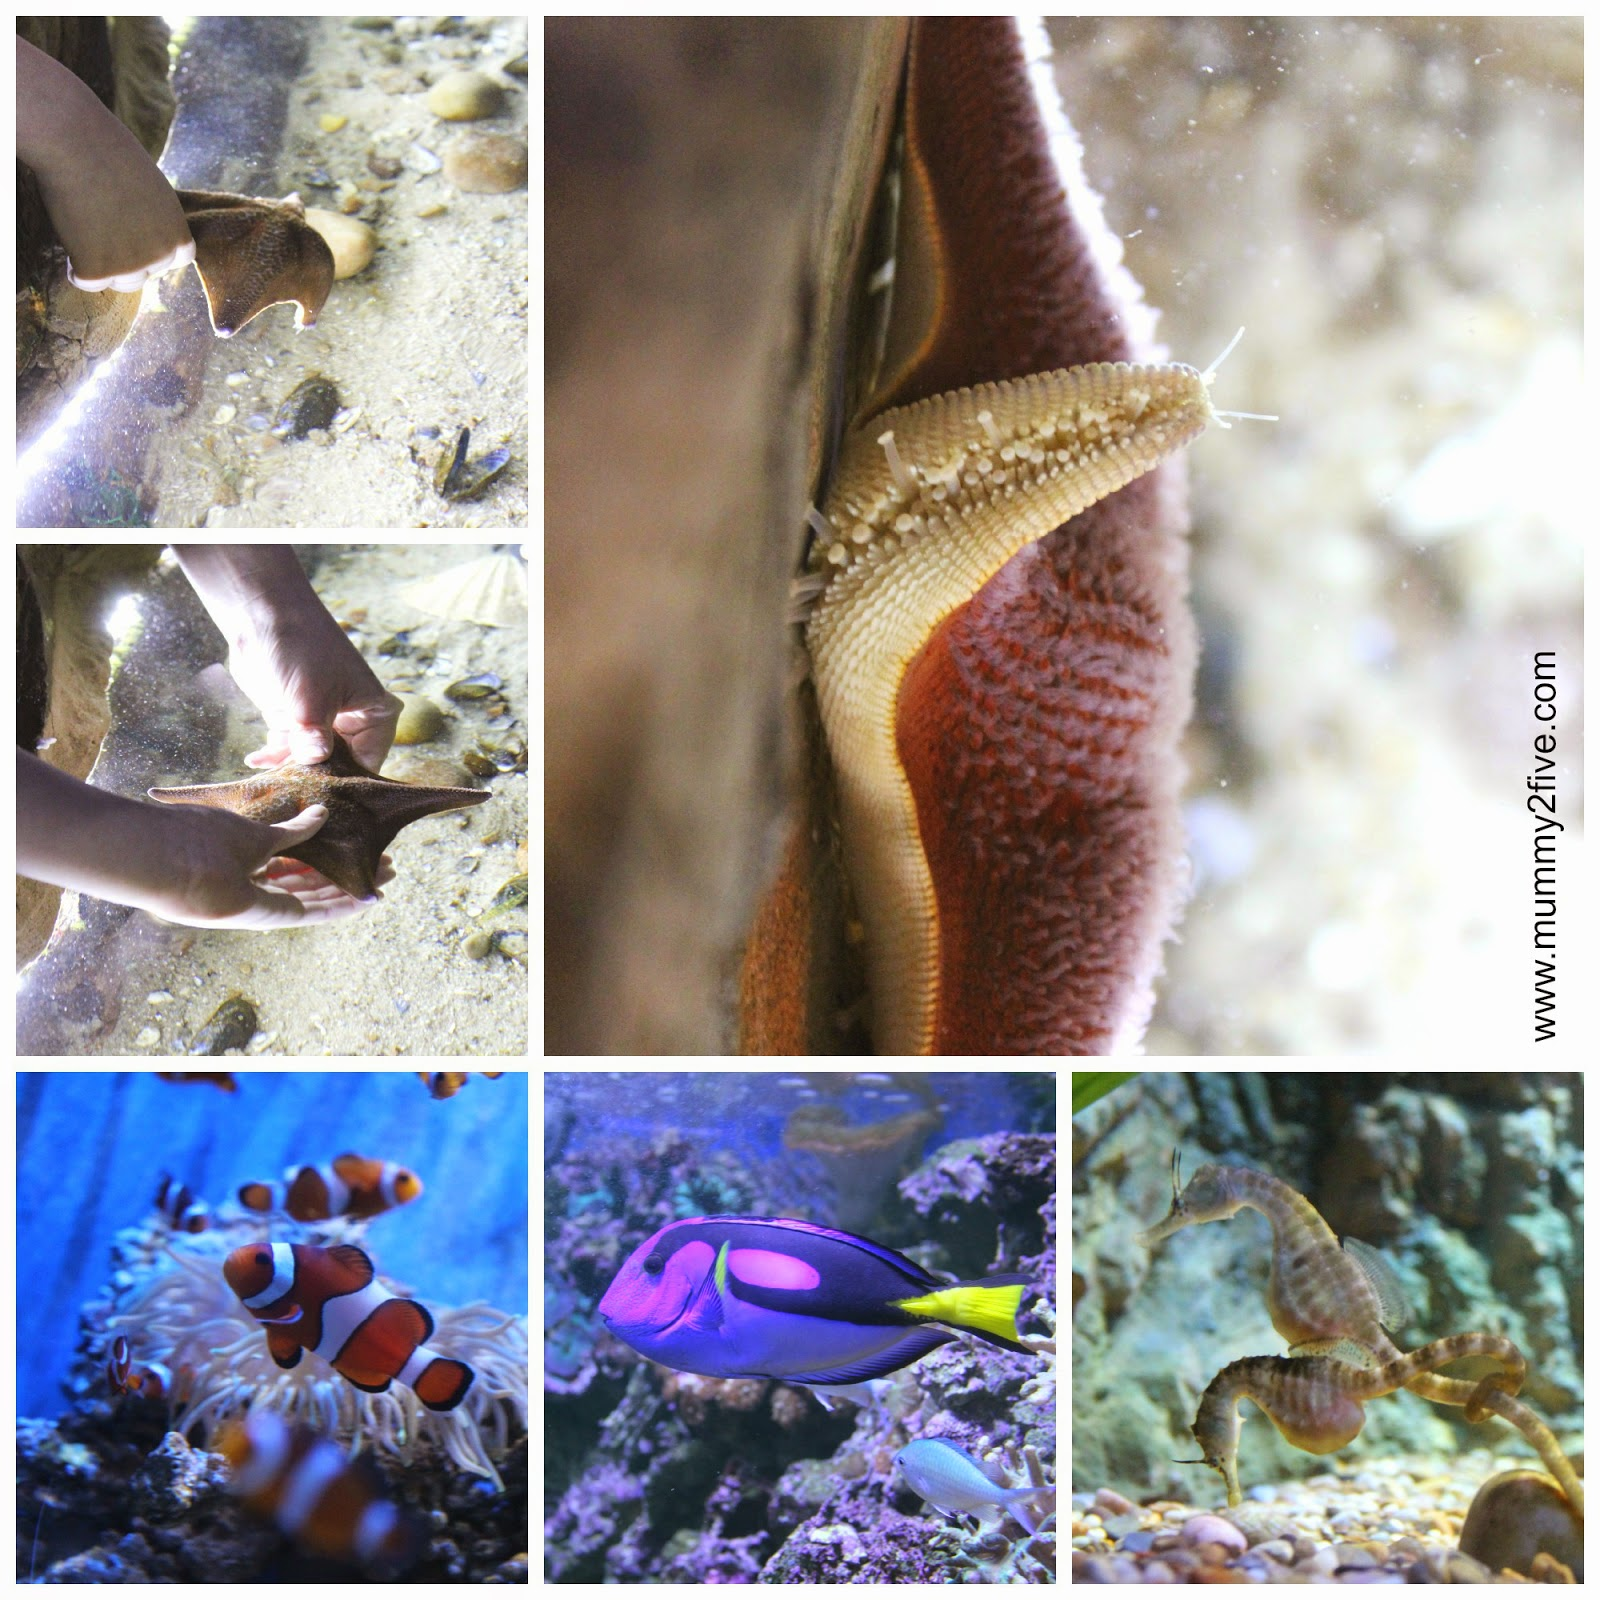 starfish, clownfish, regal tangs and seahorses